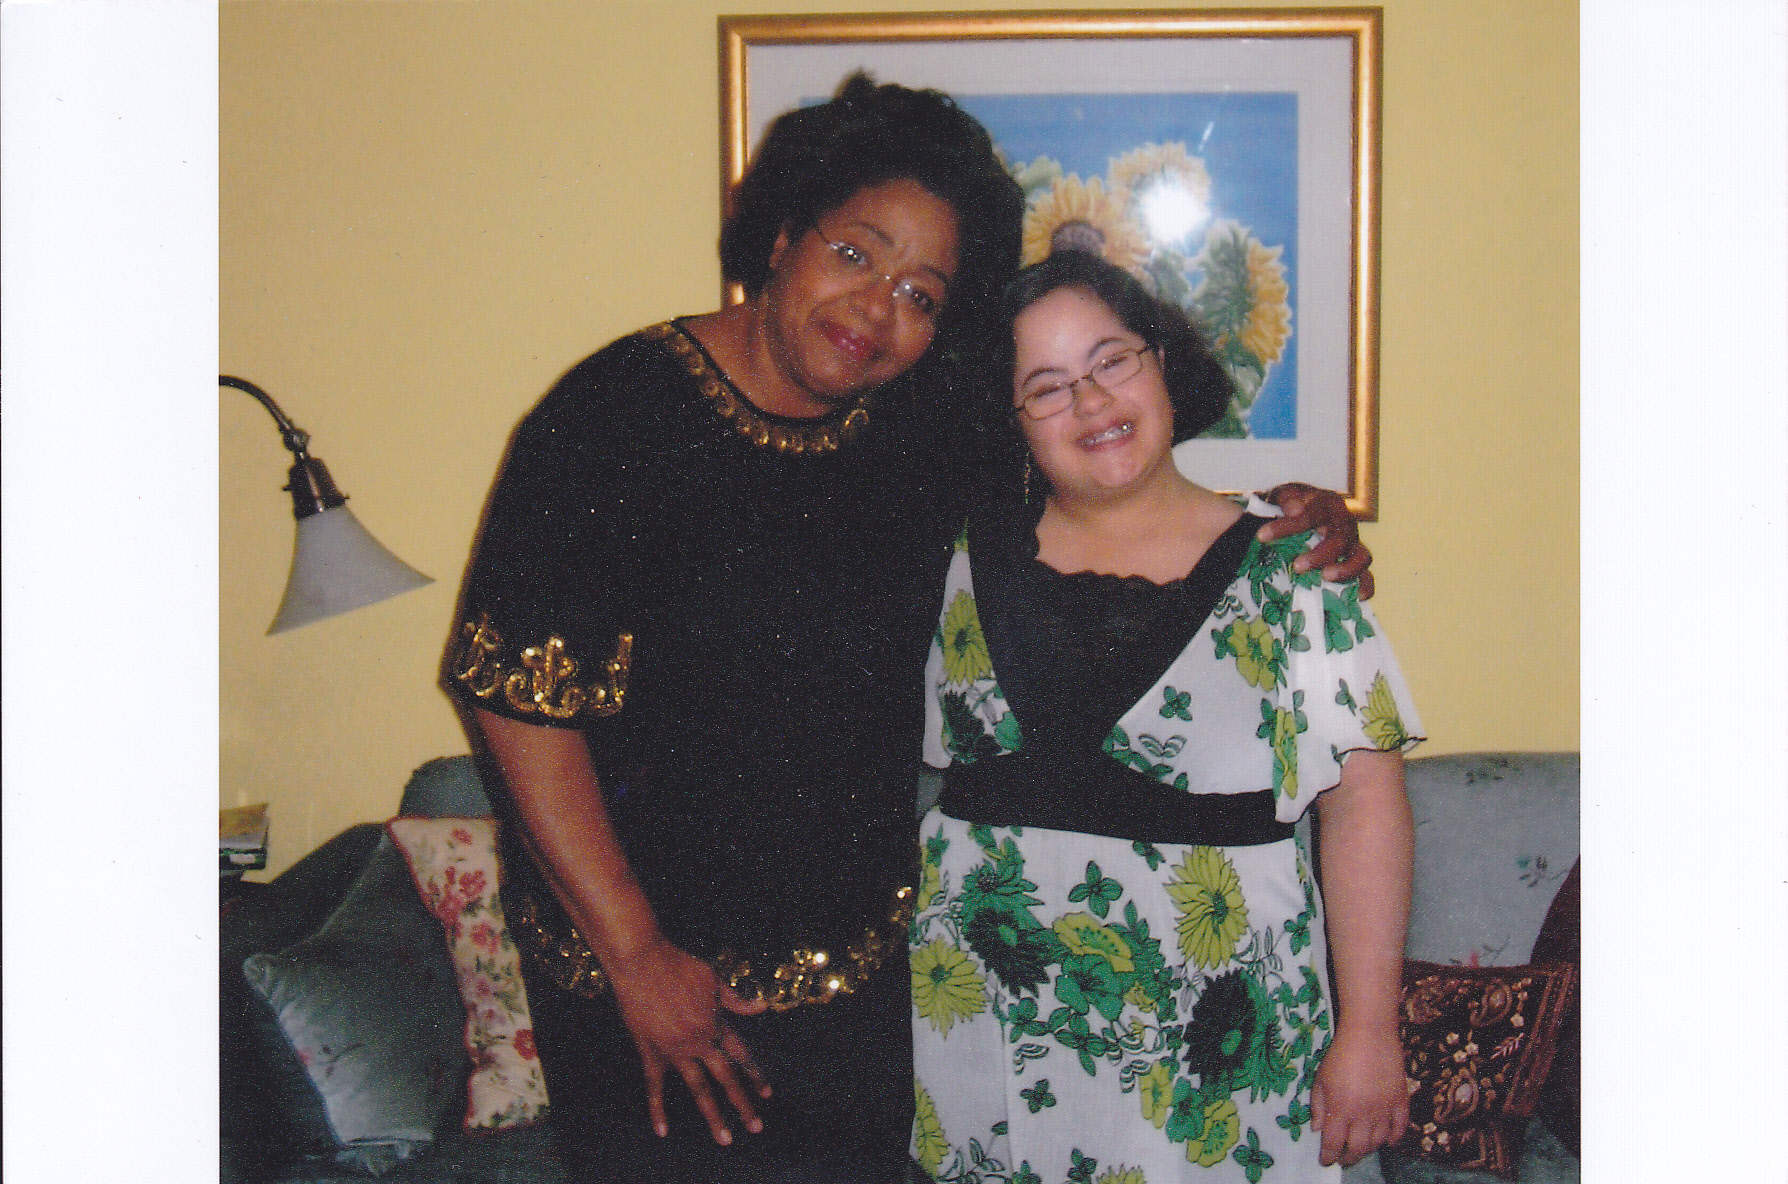 Enrica in her 20s with her mother Judith in the living room of the family home she grew up